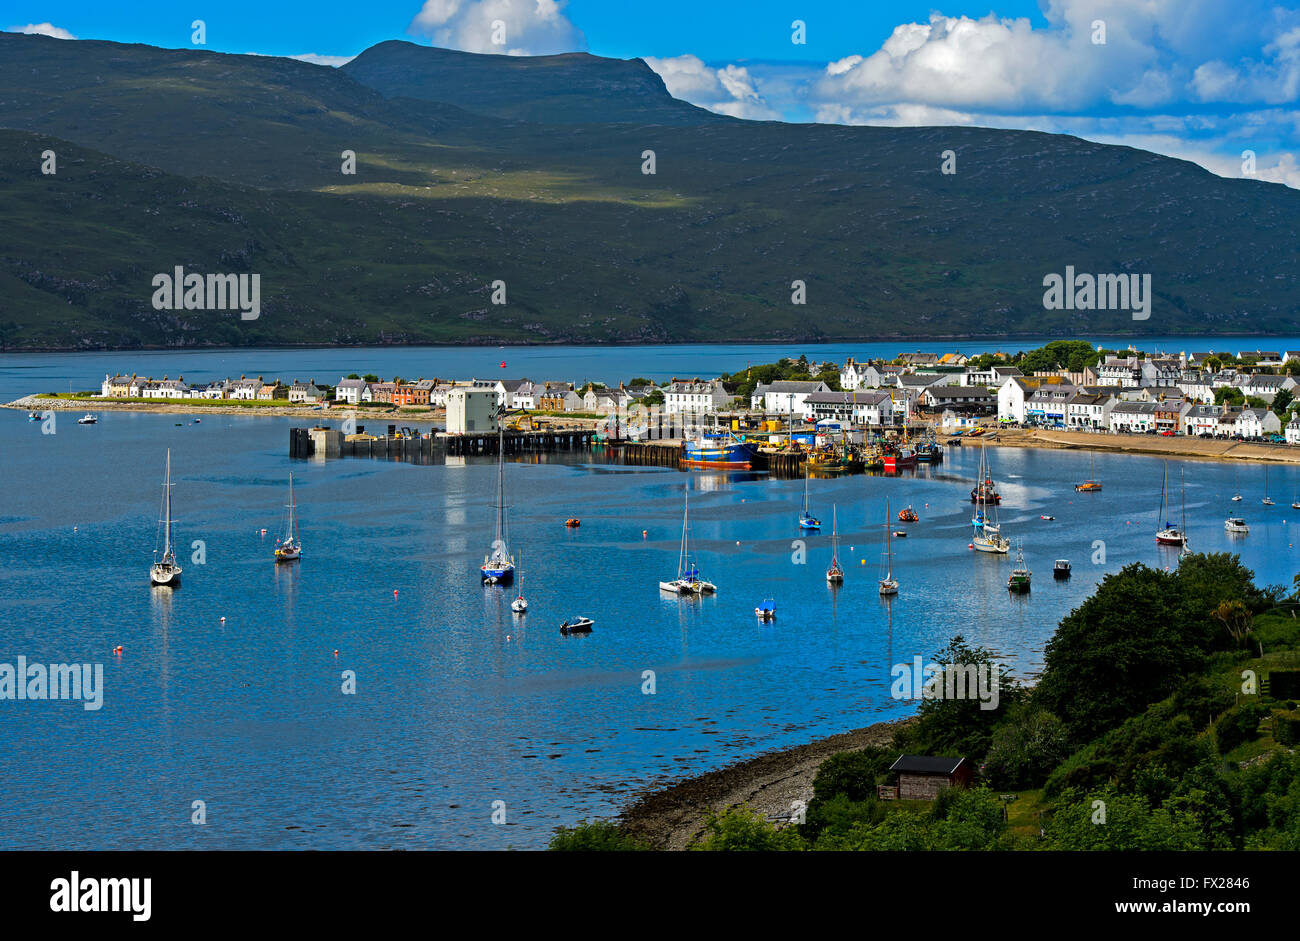 Ferry terminal, Ullapool, Ross-shire, Scotland, Great Britain - Stock Image